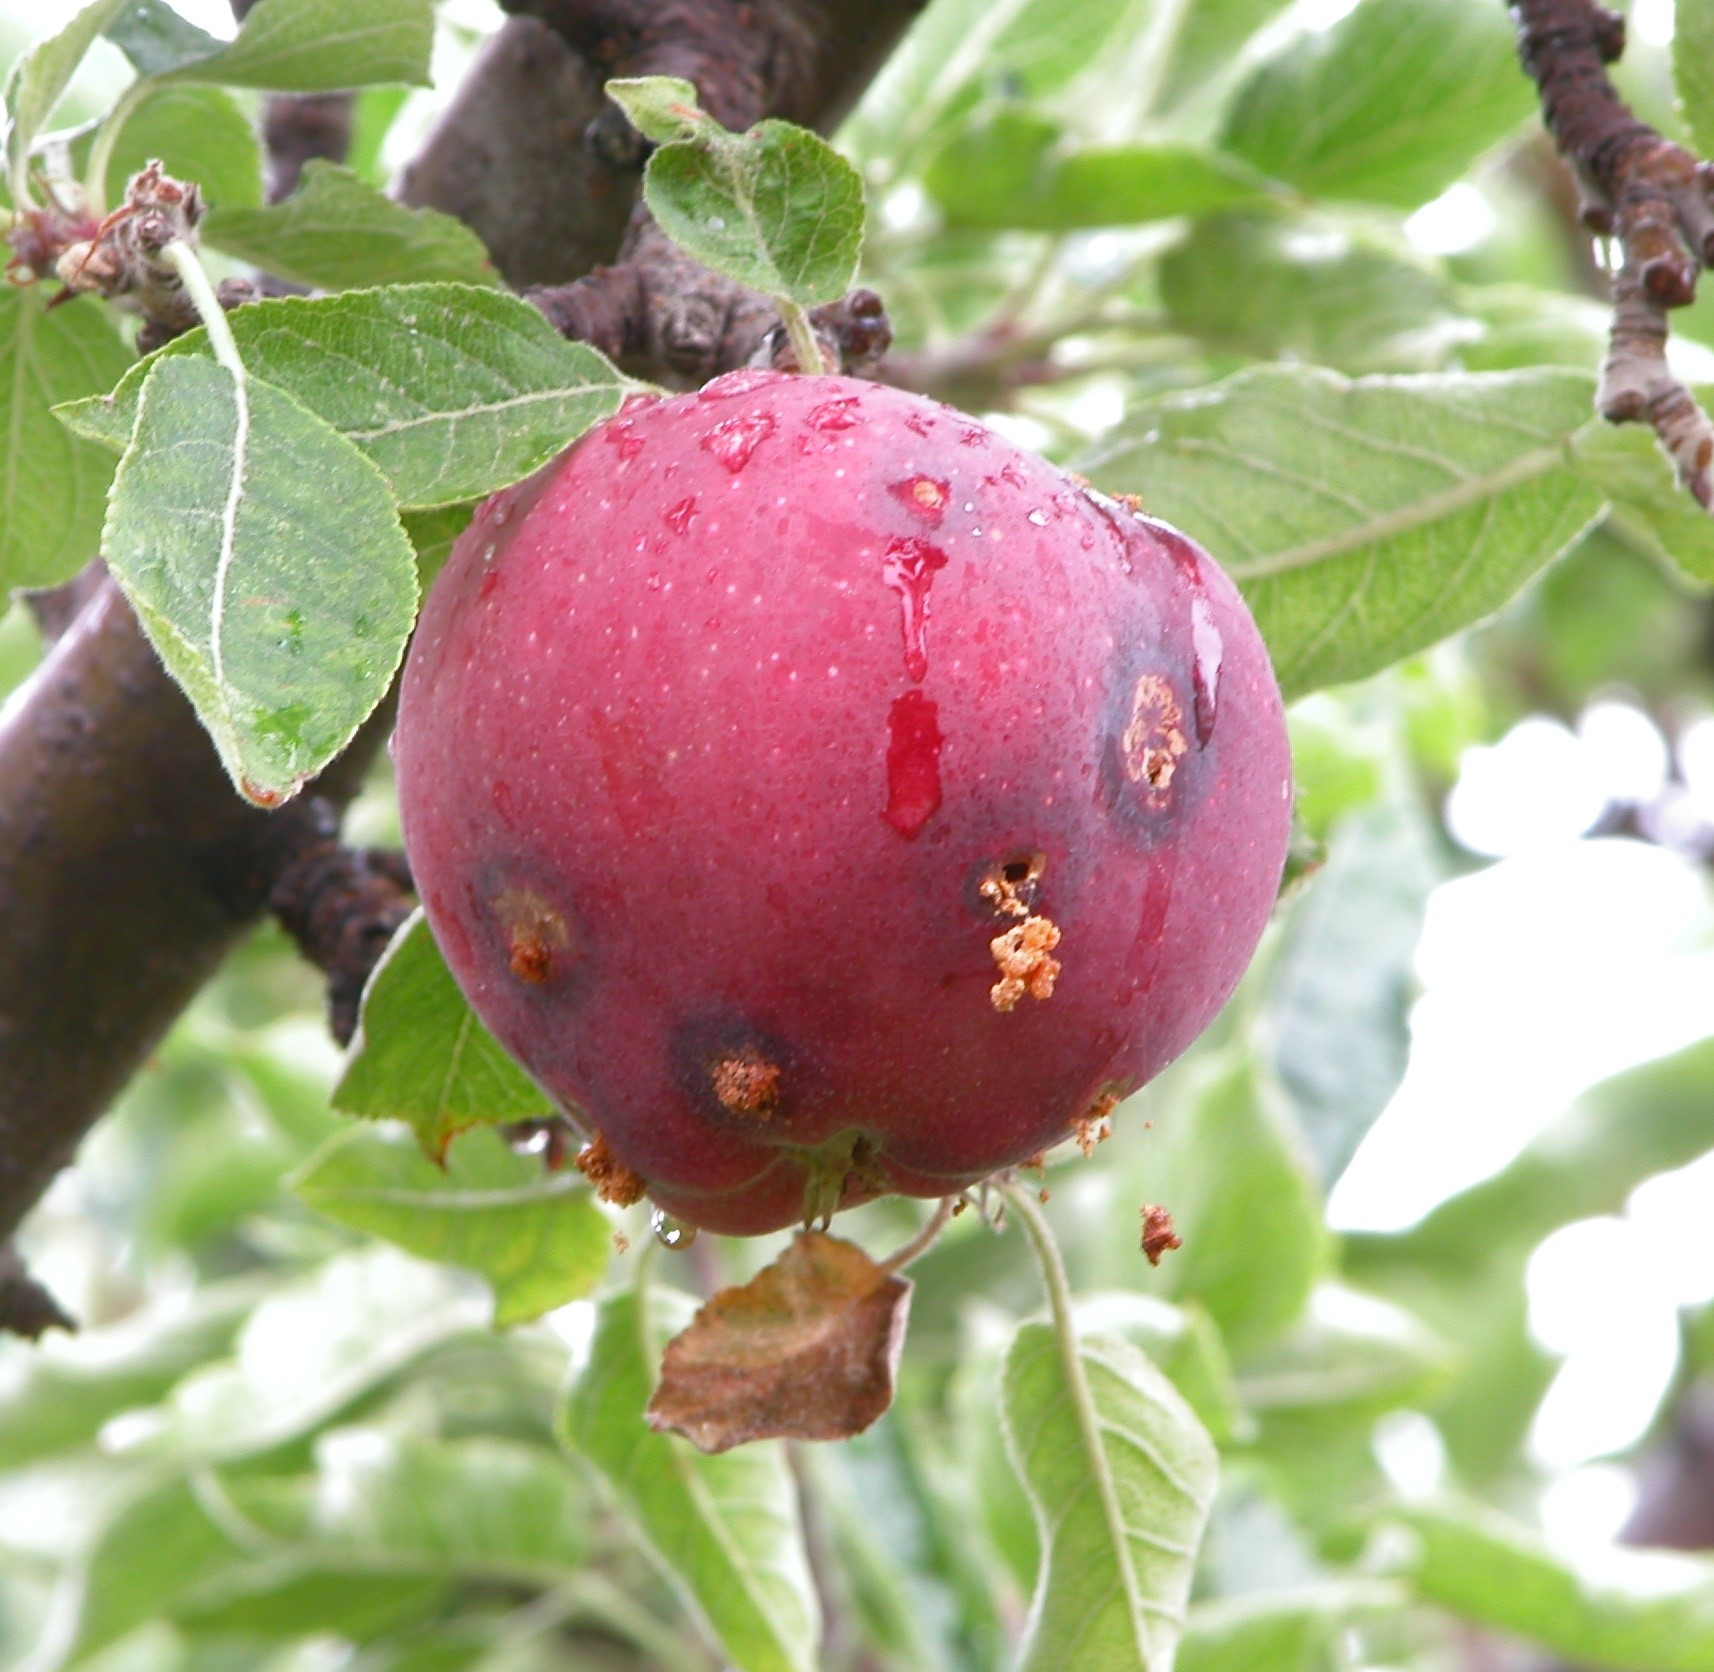 What are some good apple tree sprays to prevent bug infestations?